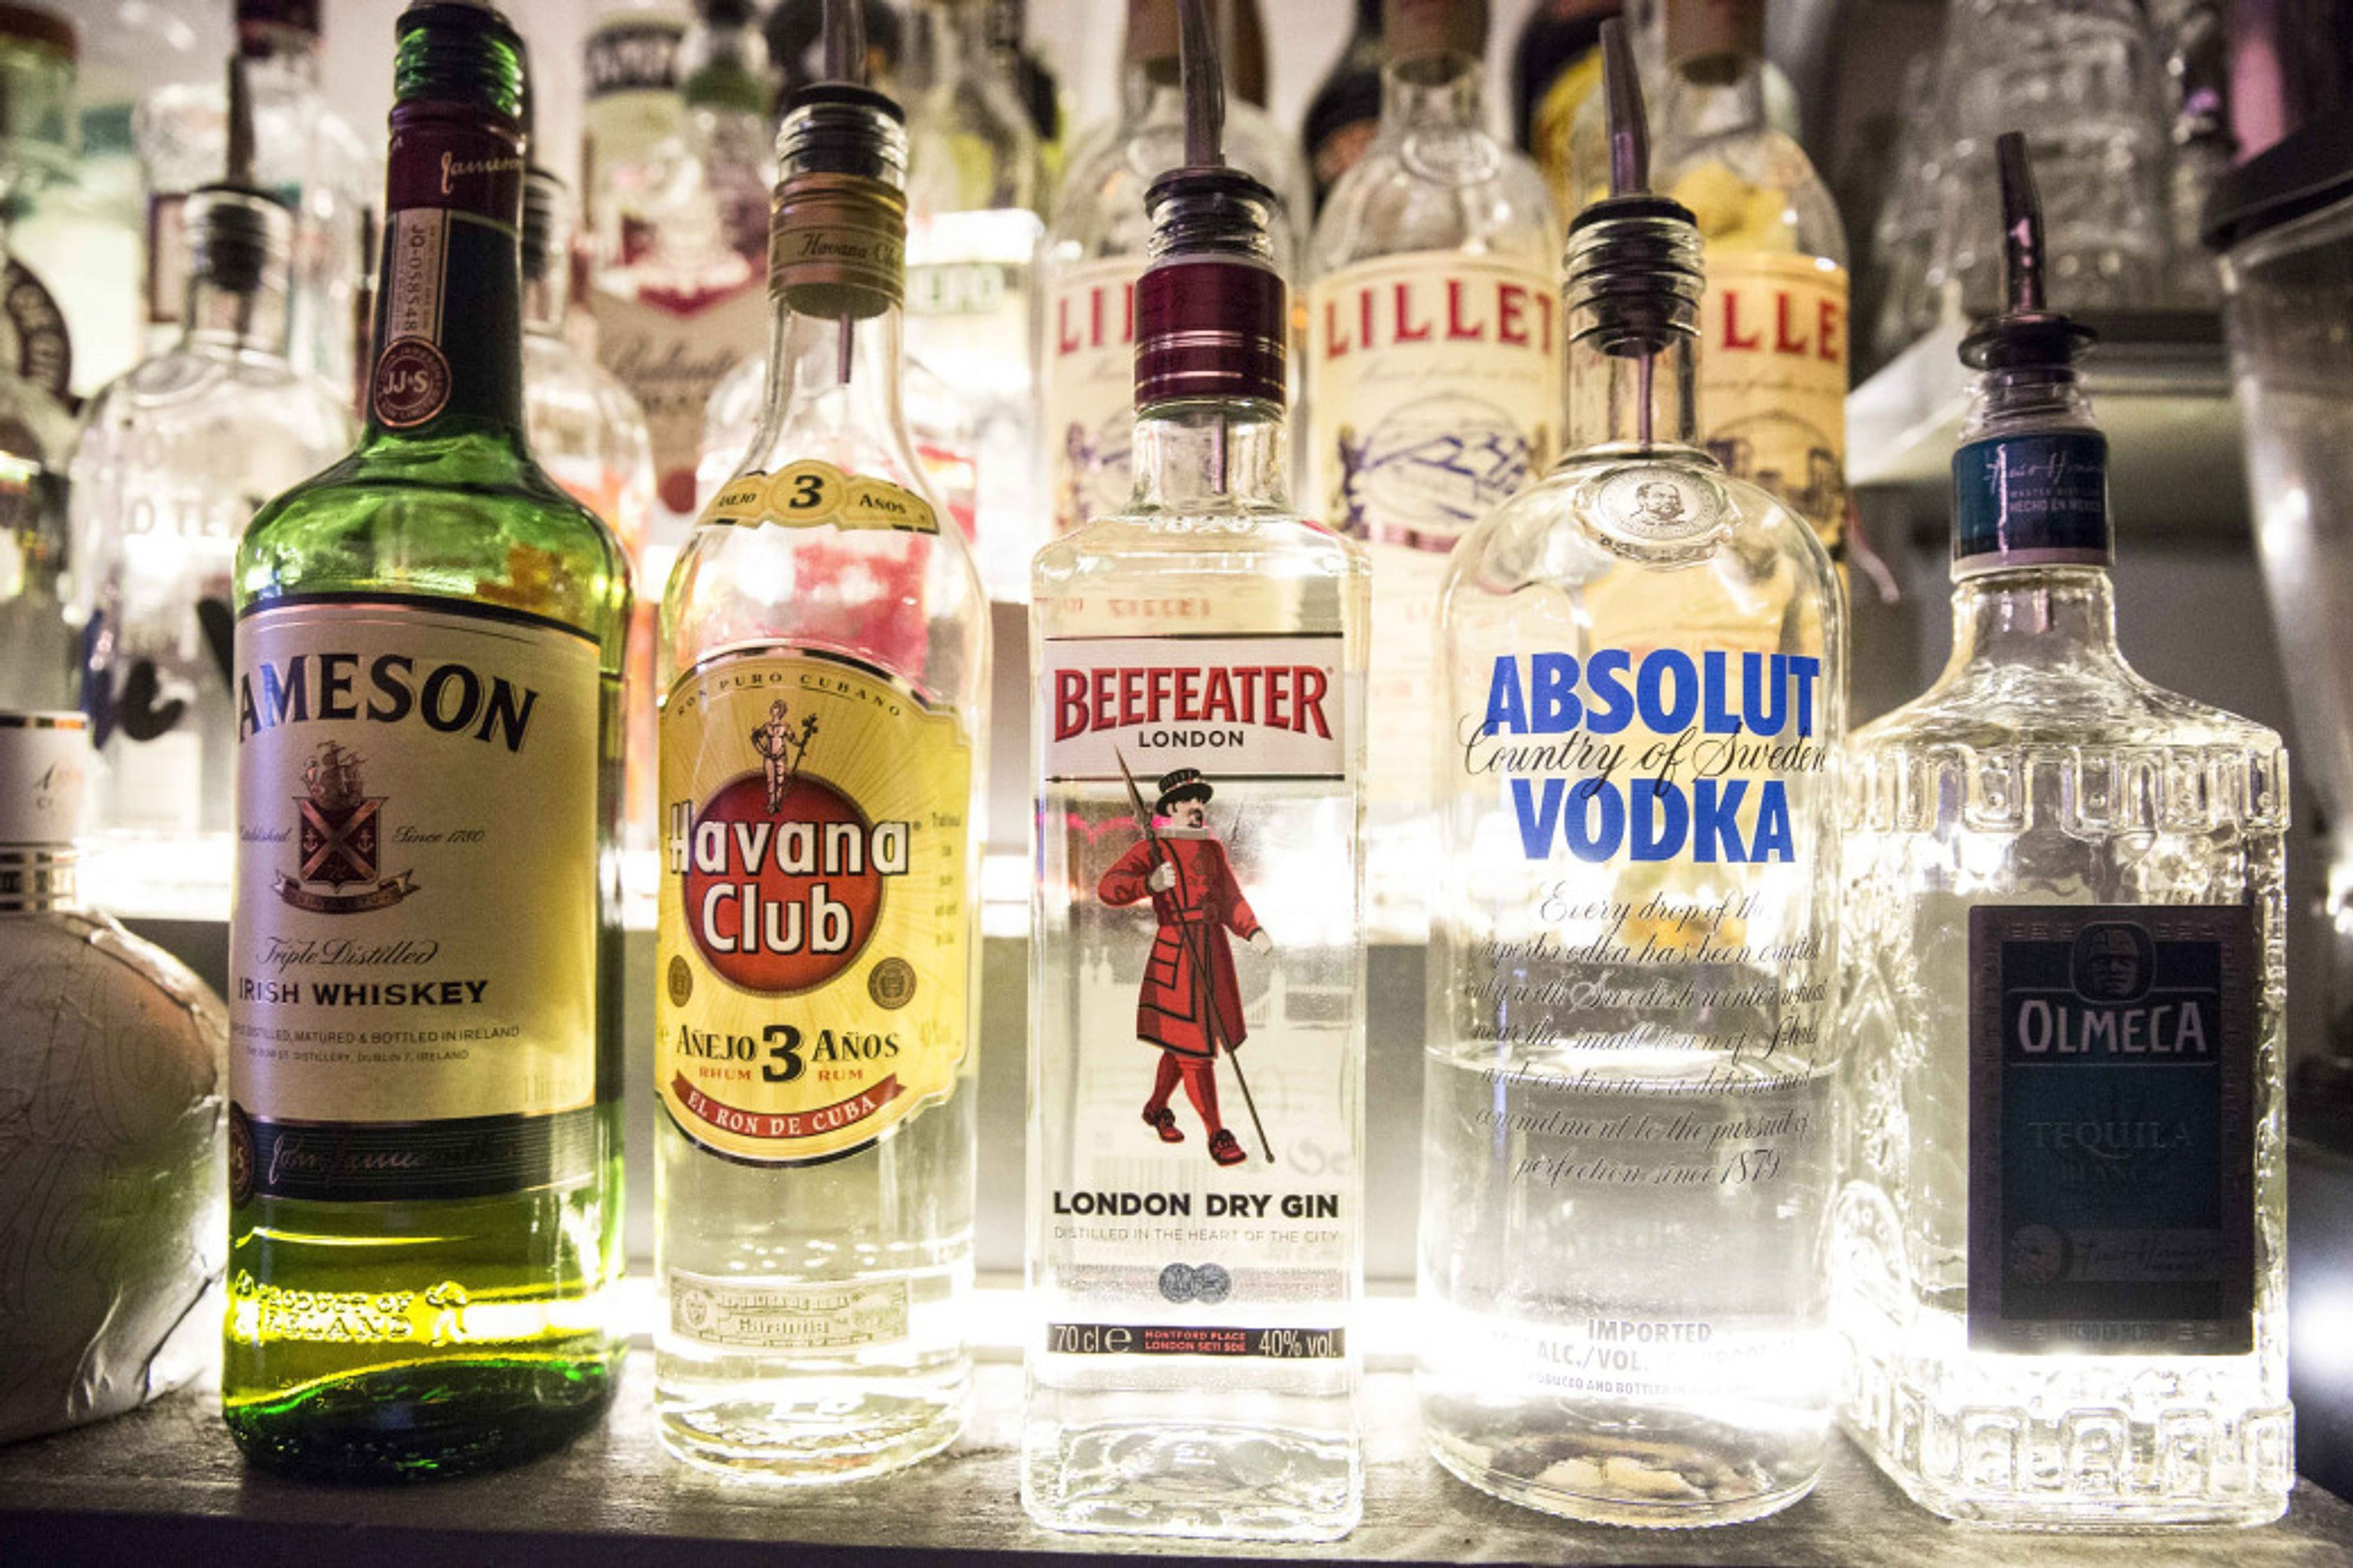 Booze marketer Pernod Ricard plans app to identify social media hate speech